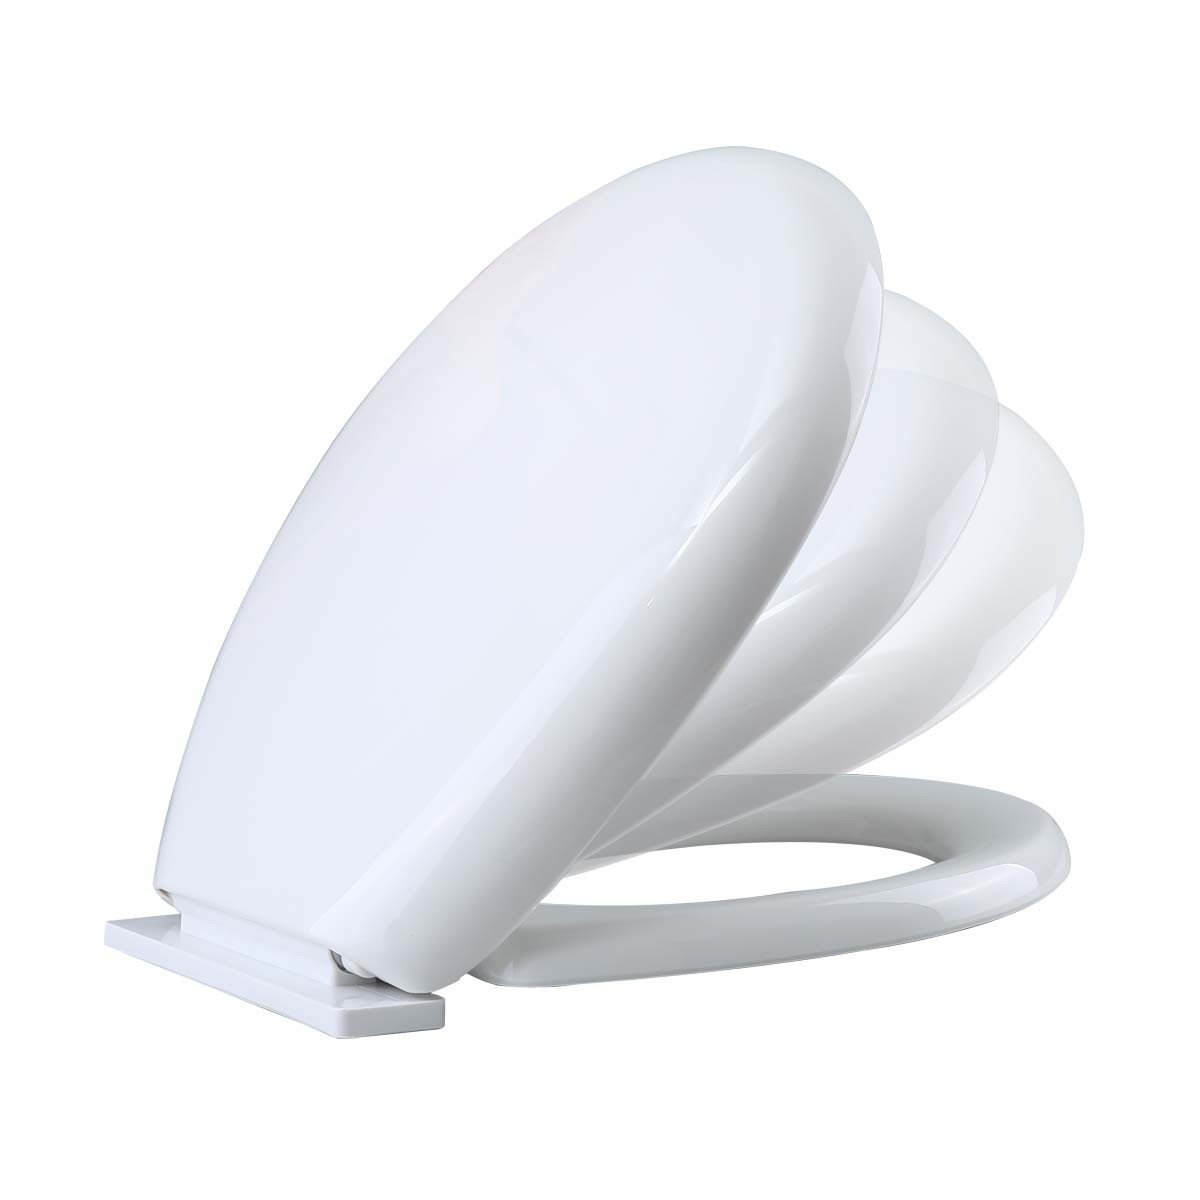 No Slam Toilet Seat Easy Close White Plastic Round Comfortable Ergonomic Design Slow Closing Lid System Quiet Durable High Impact Plastic Resists Staining And Cracking Easy Clean Easy Install. Lid 16 1/2'' L X 14-3/16'' W Adjustable Hinge Fits Hole Spacing